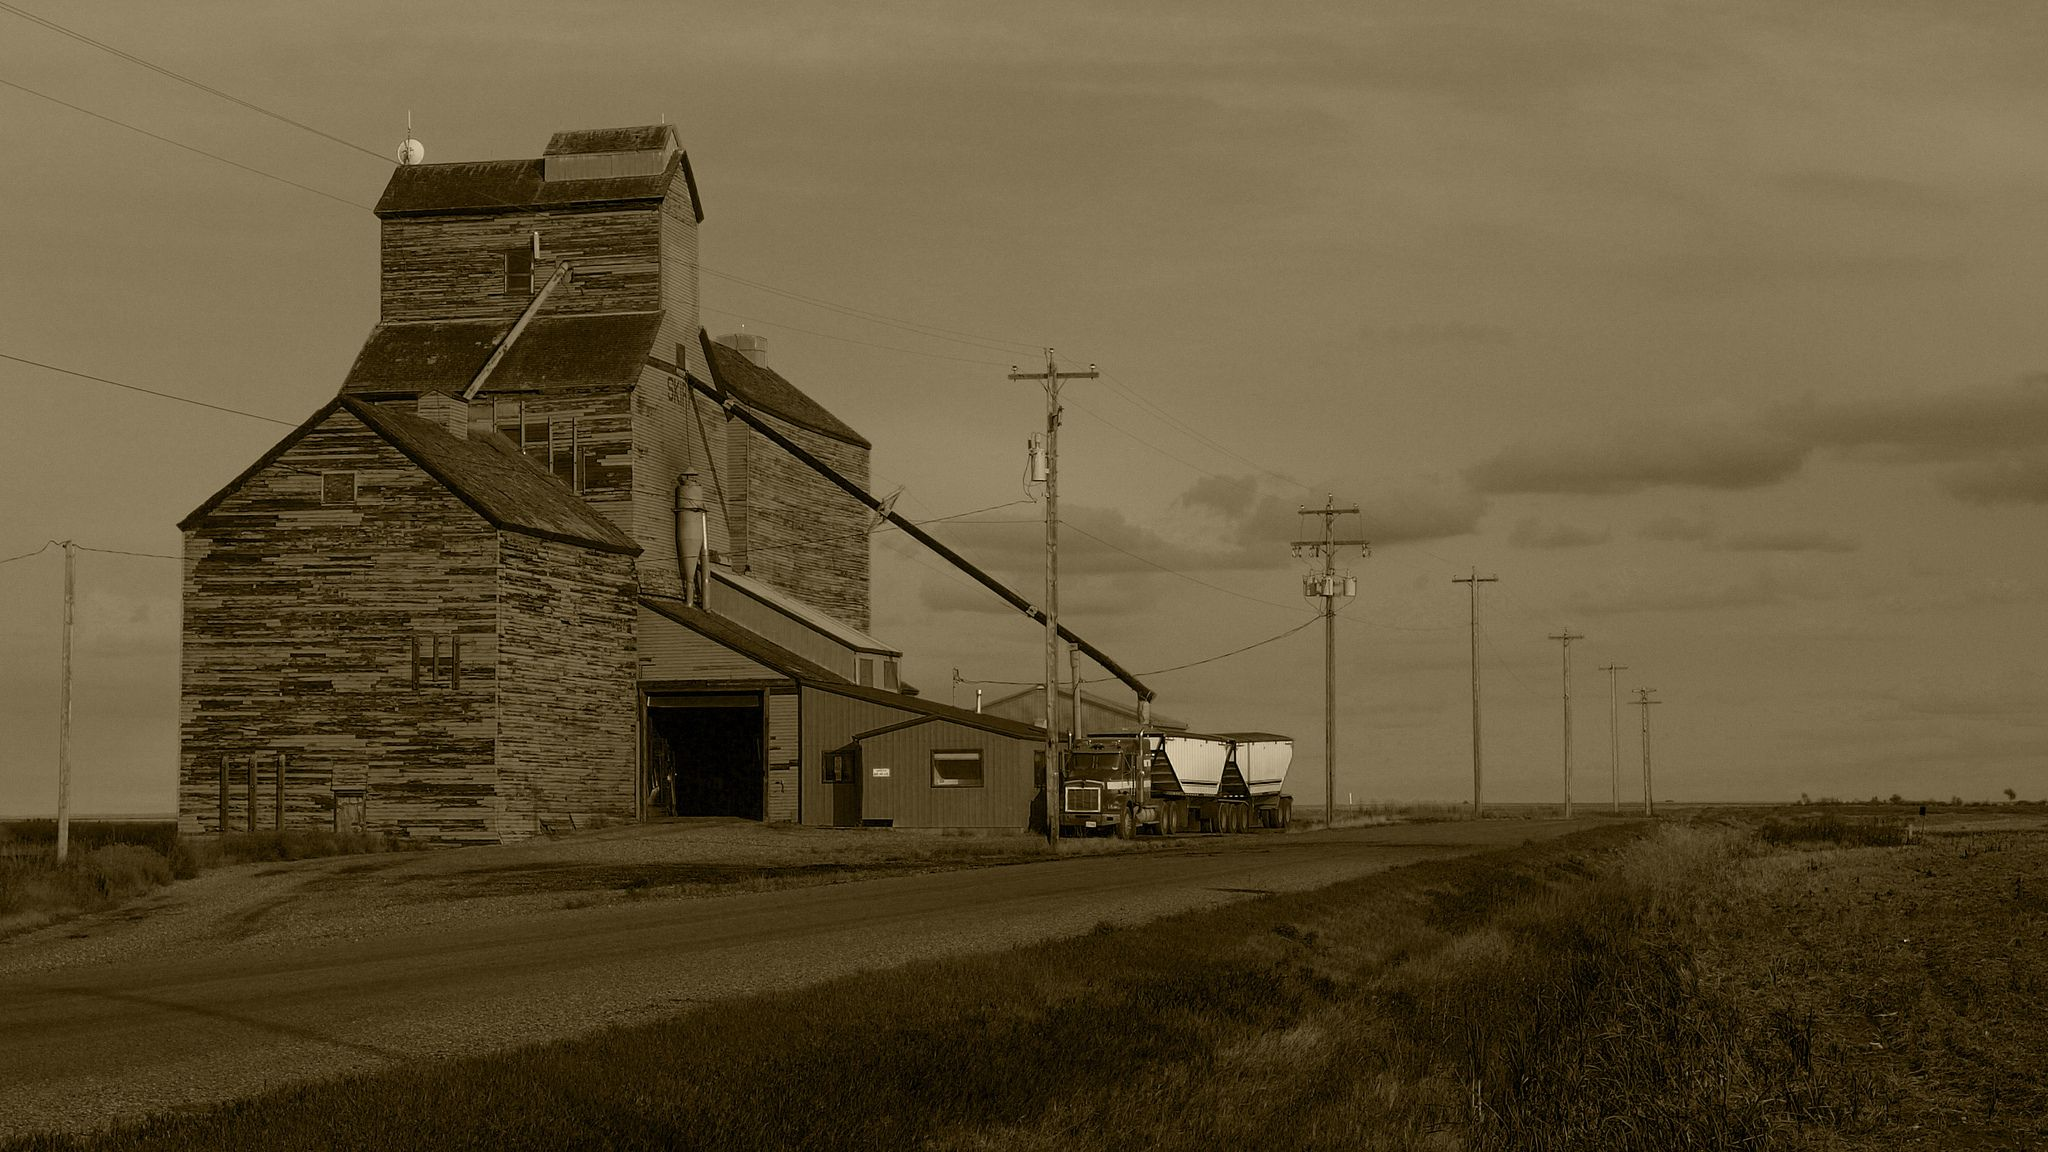 China's Smithfield Consolidates Supply Chain with Grain